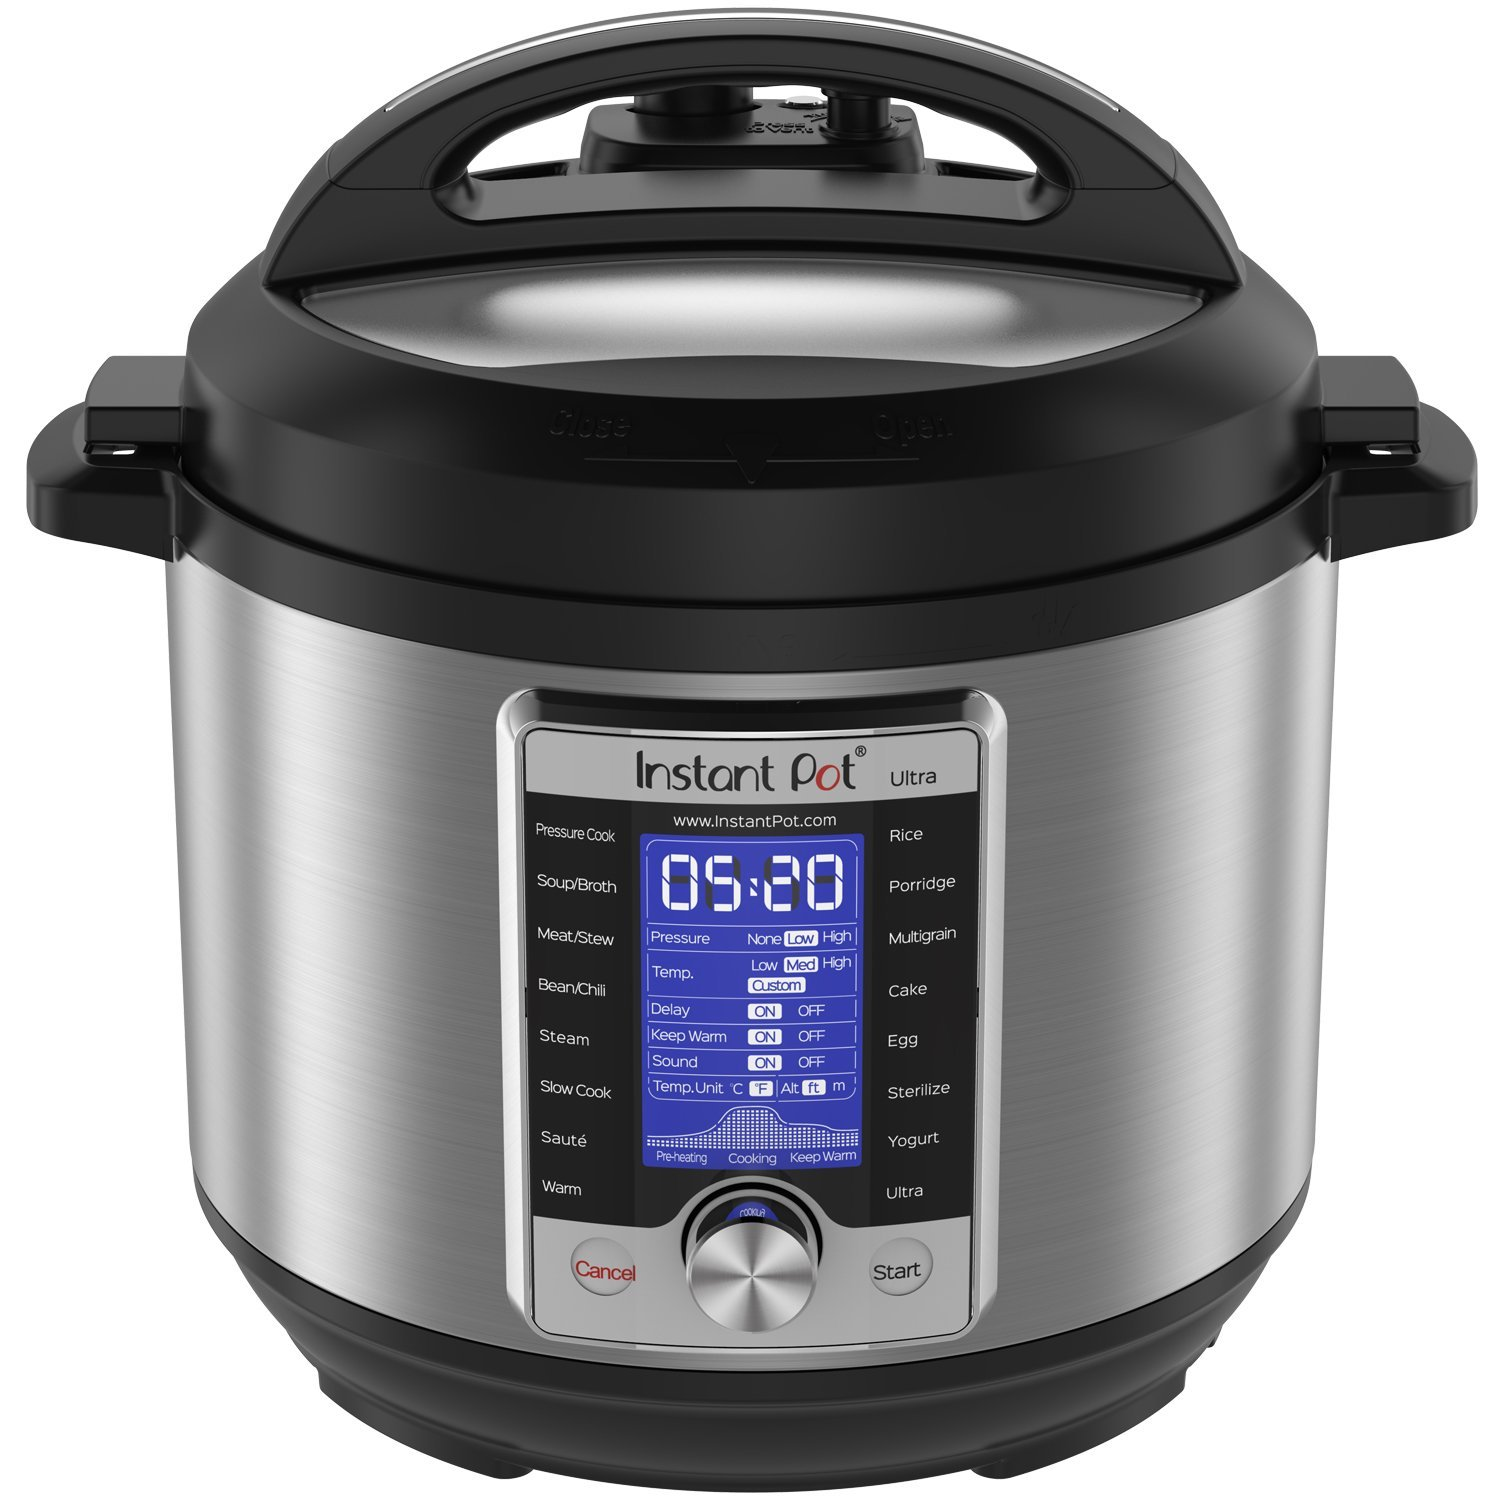 Instant Pot Ultra 6 Qt 10-in-1 Multi- Use Programmable